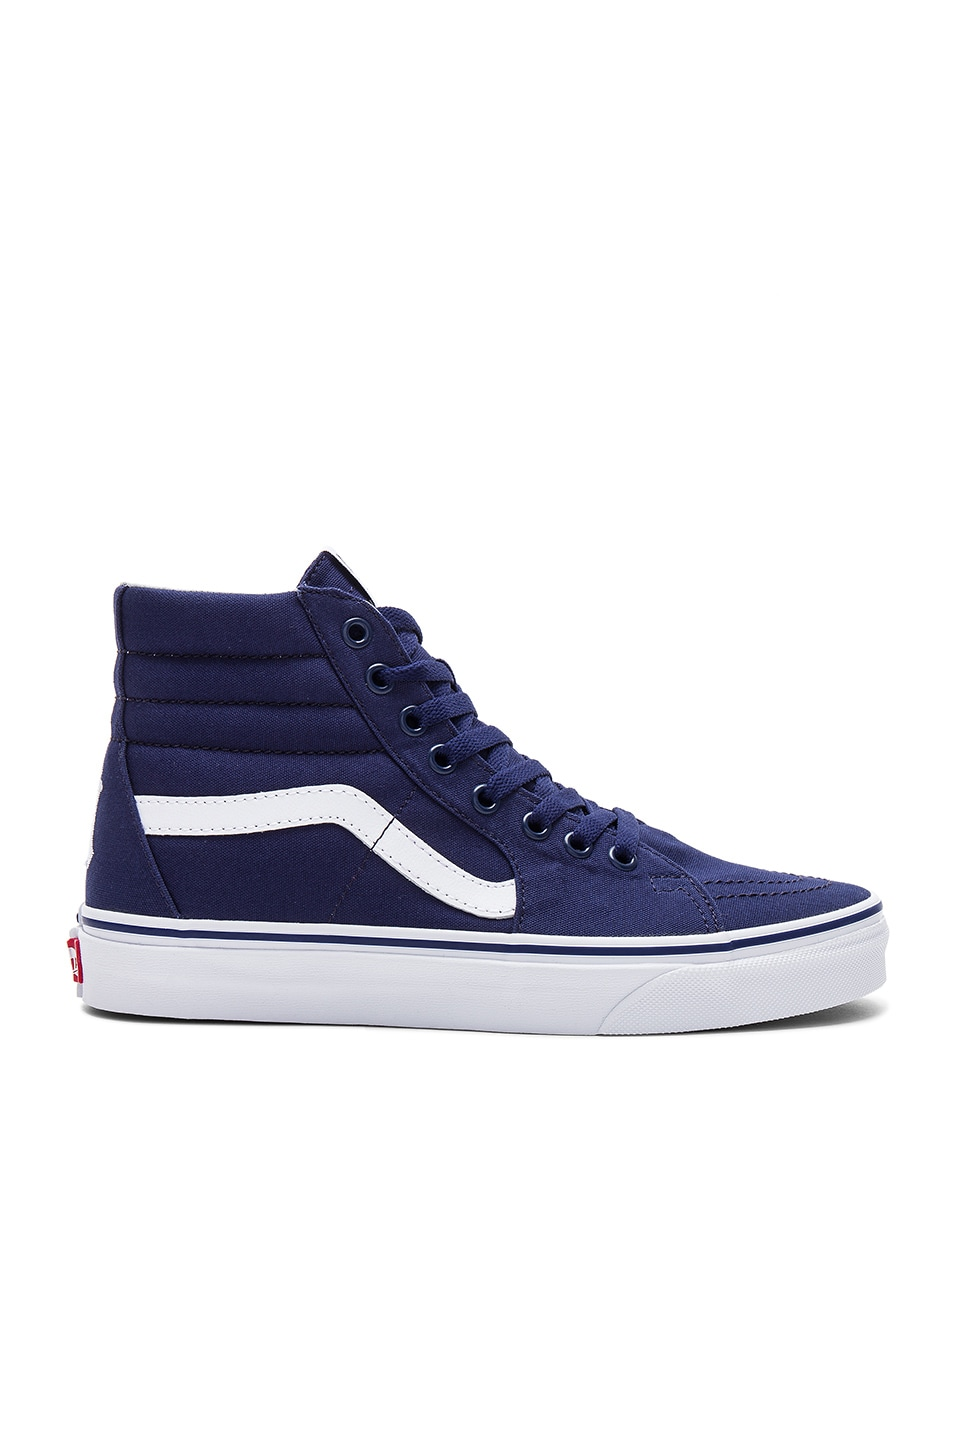 Vans SK8 Hi NY Yankees in New York Yankees Navy